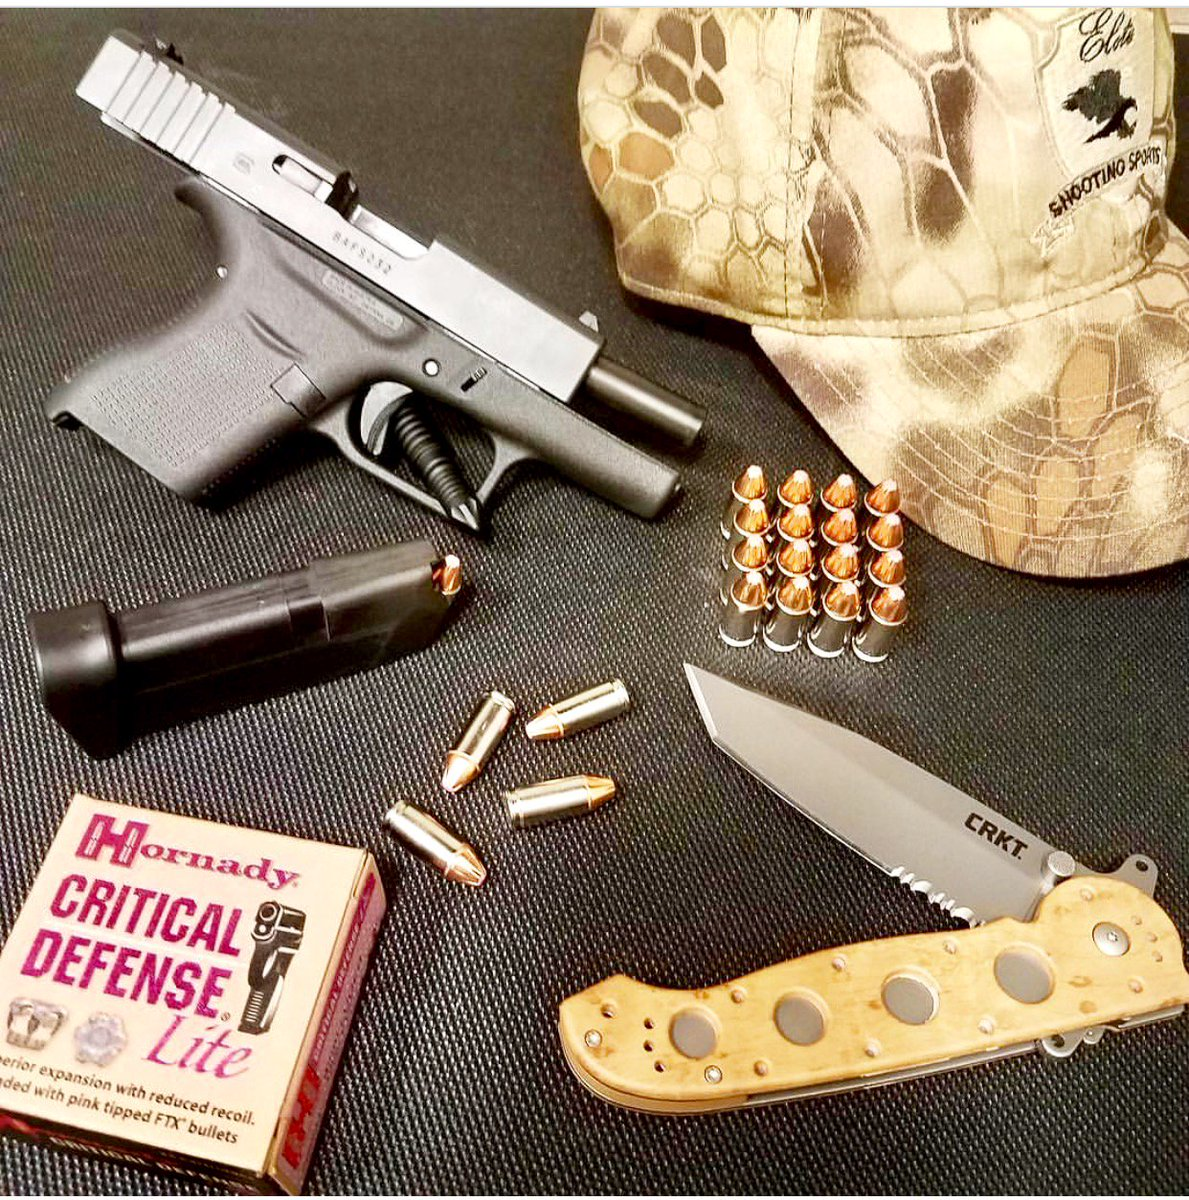 It&#39;s #SunDayGunDay What are you bringing to the #range?  http:// bit.ly/EliteRange  &nbsp;   #Glock43 #hornady #9mm #edc #EliteShootingSports #crkt #2A<br>http://pic.twitter.com/UaGfLaYH1B